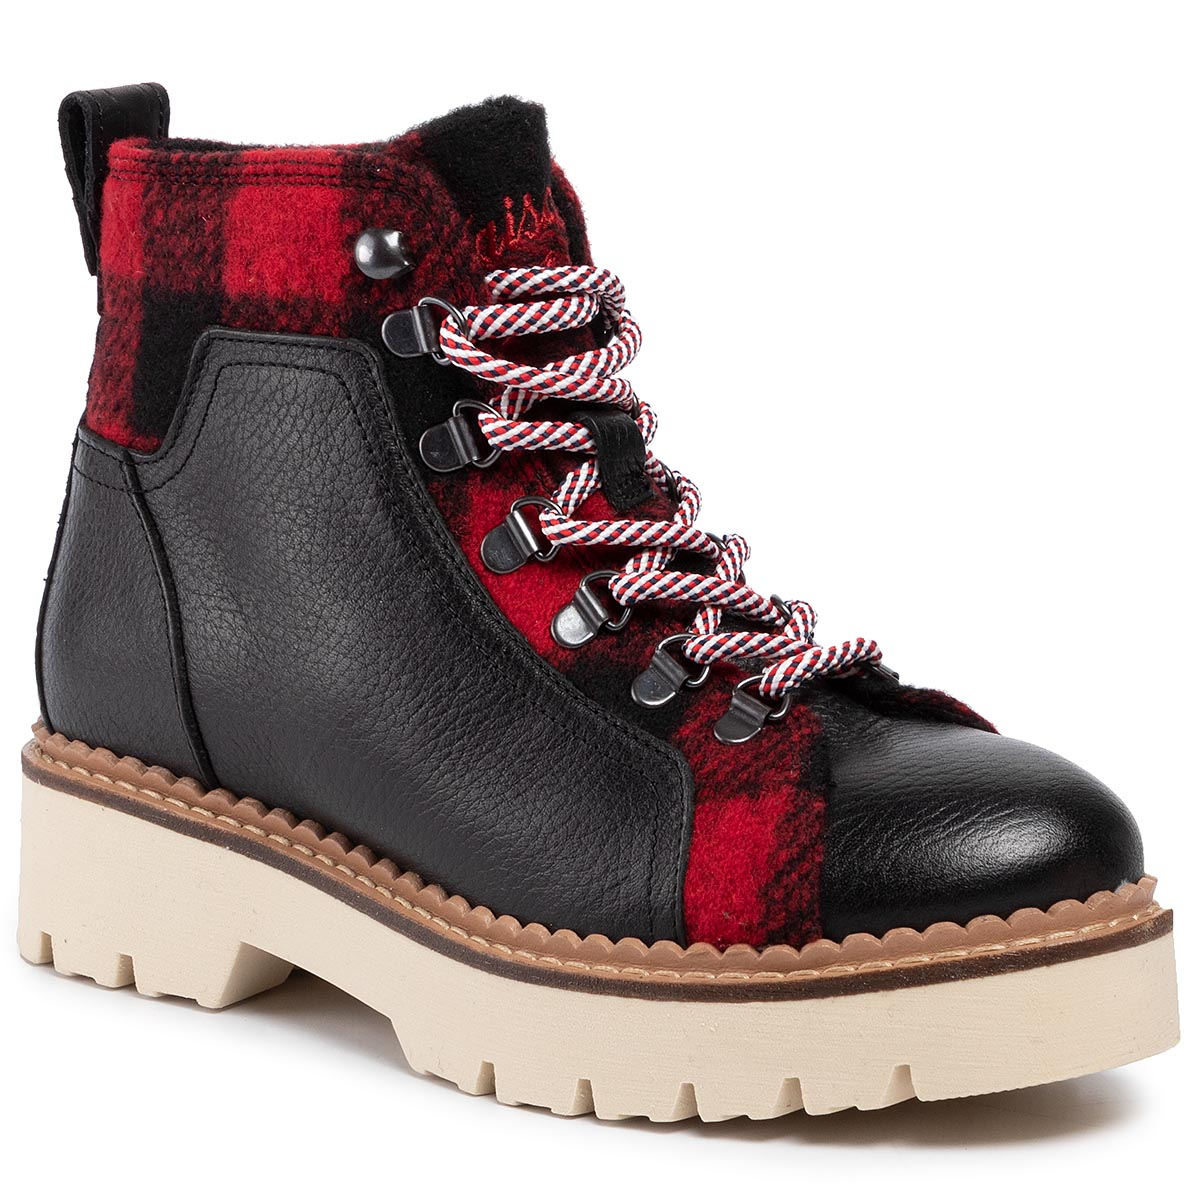 Botine SCOTCH & SODA - Olivine 19731130 Negru